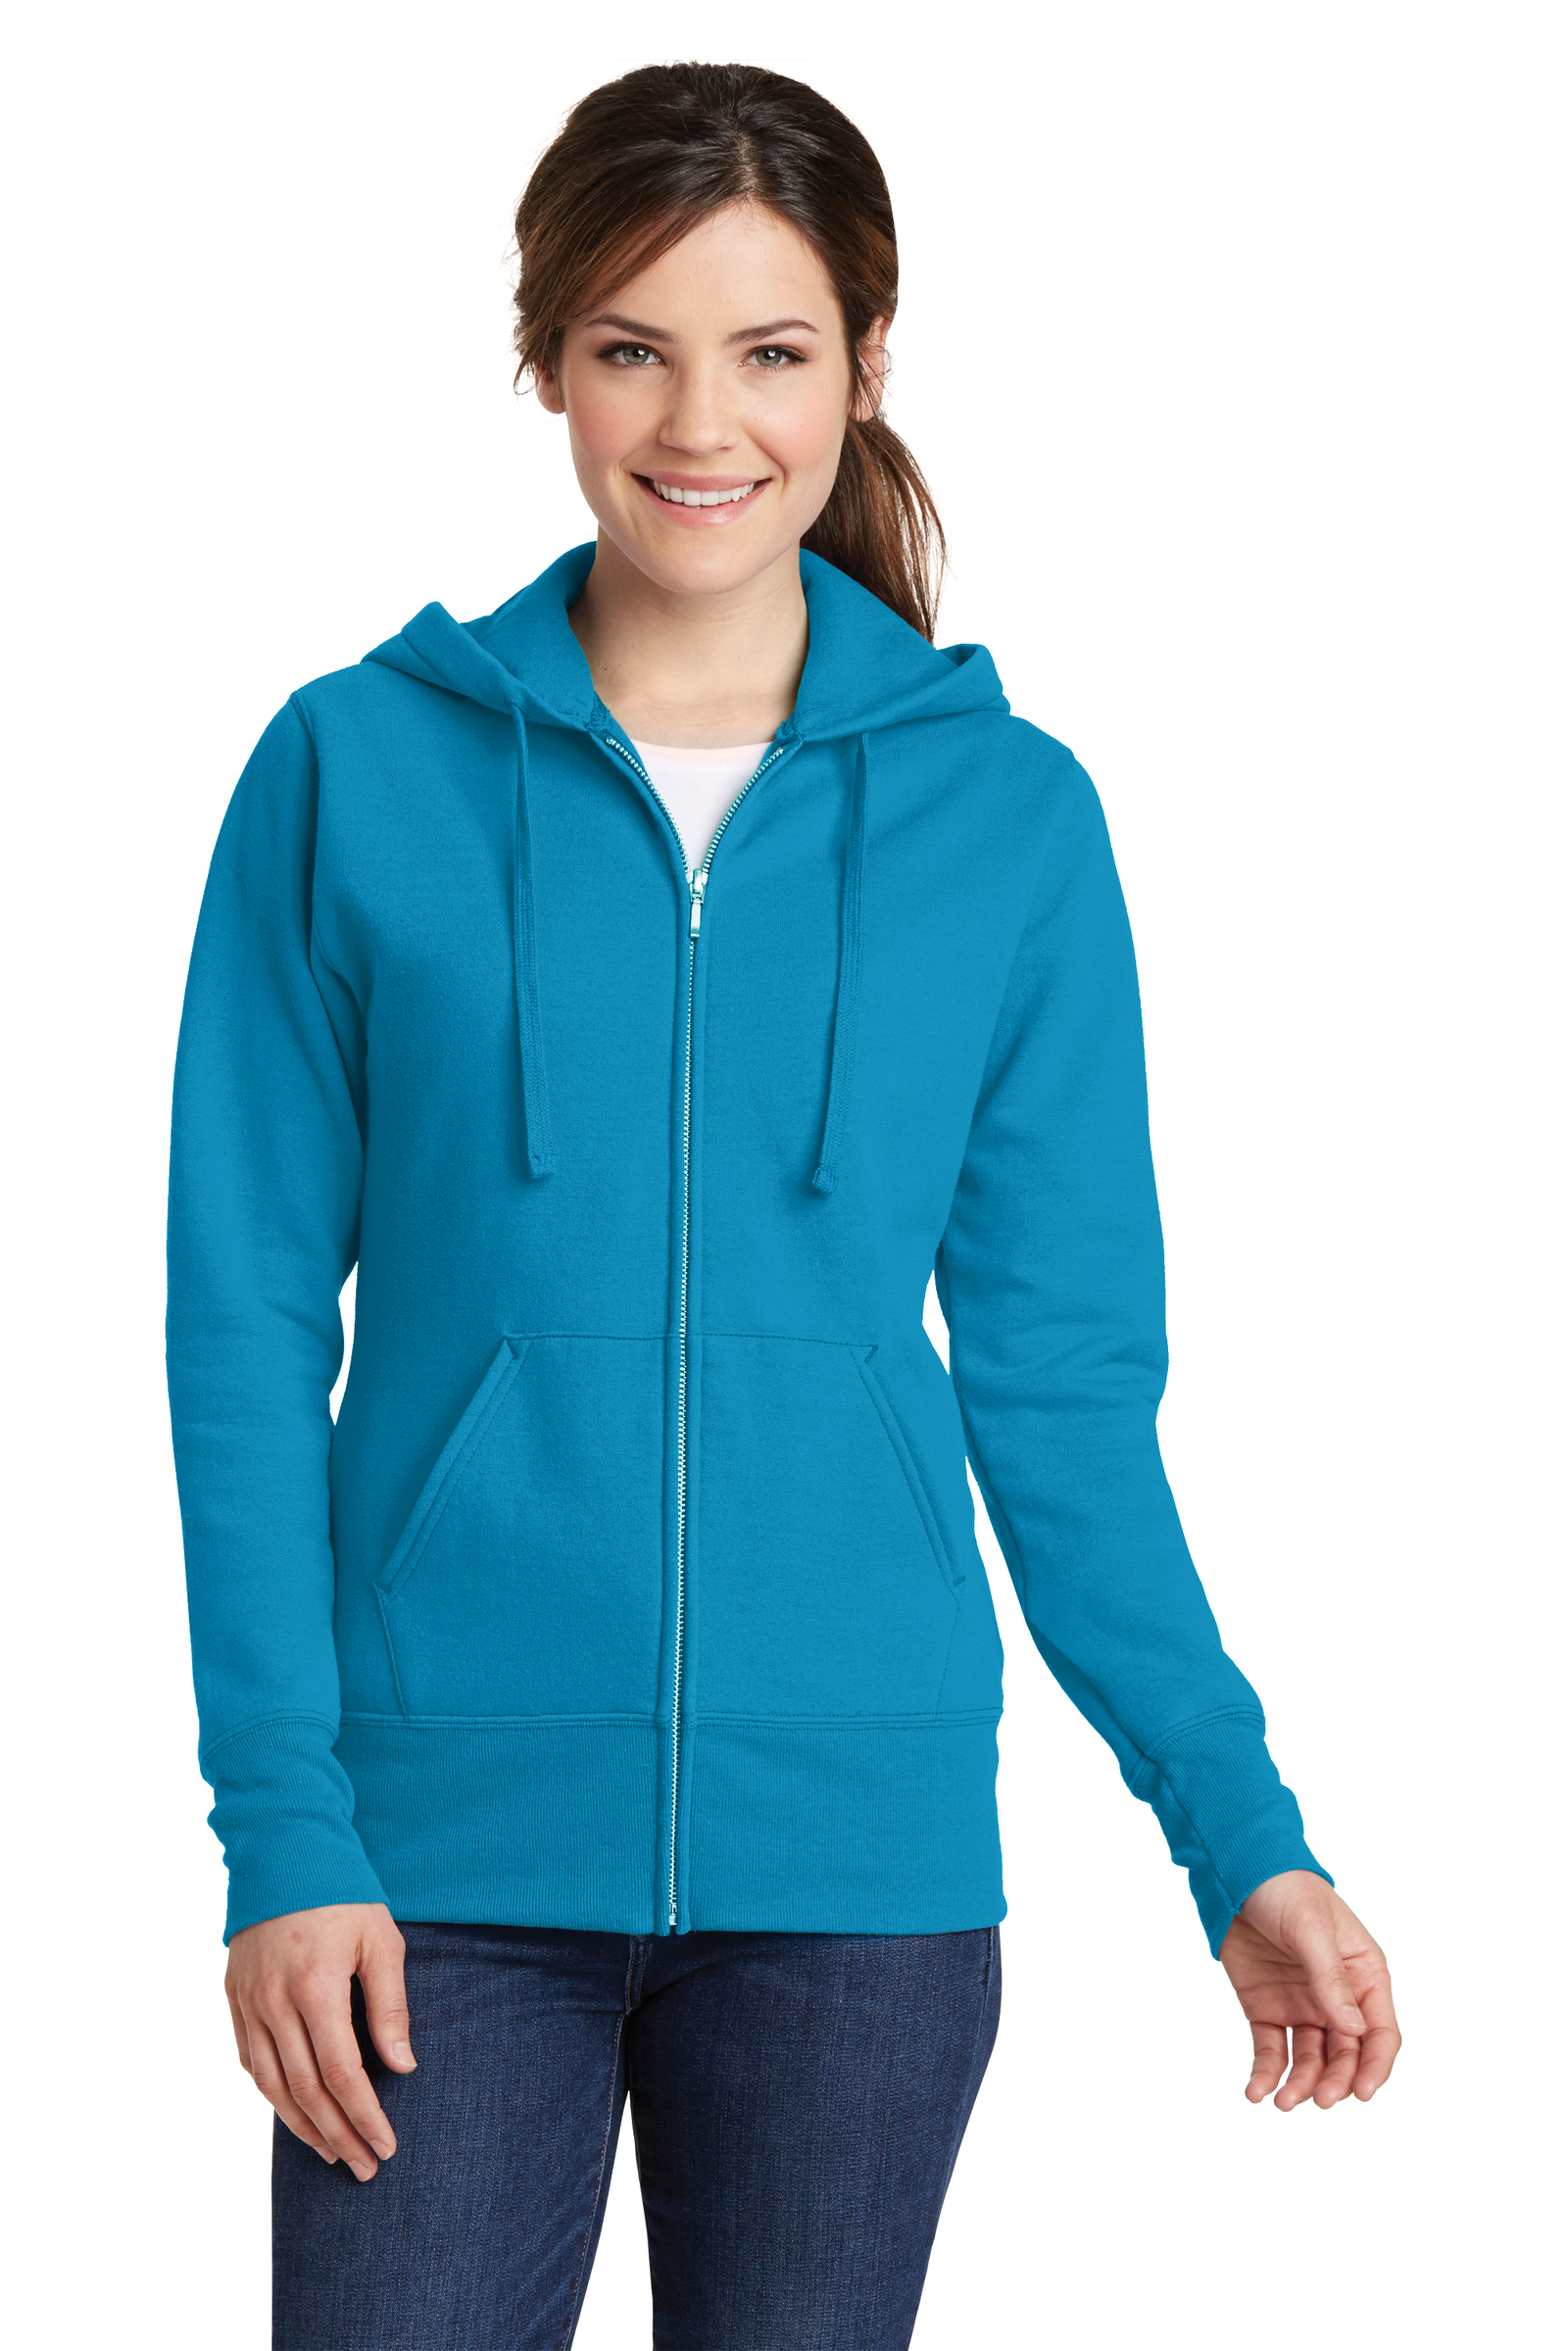 Port & Company Printed Women's Core Fleece Full-Zip Hooded Sweatshirt